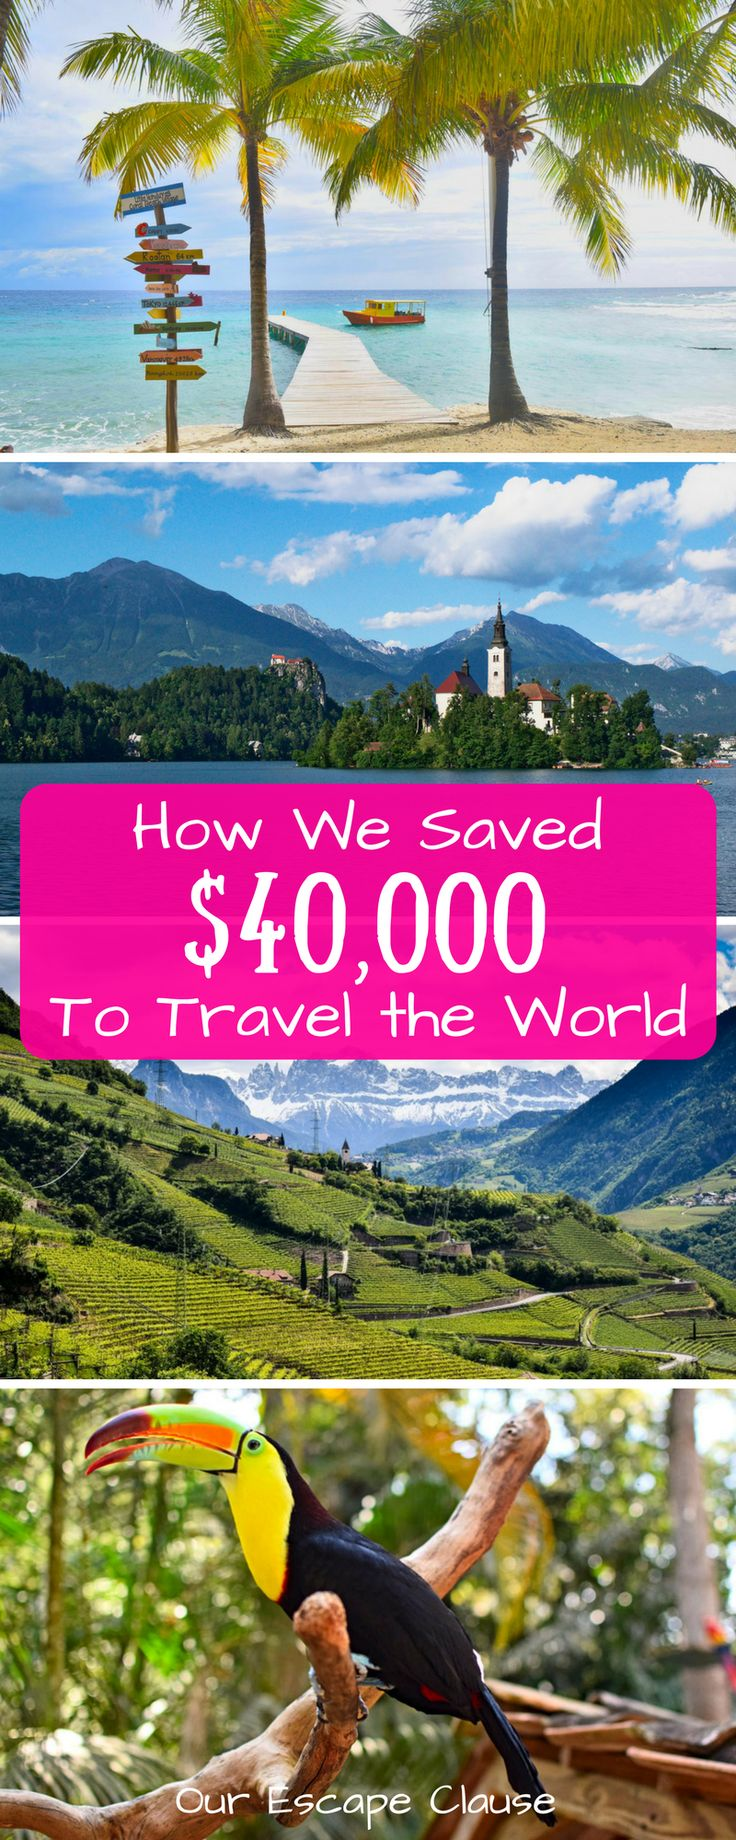 35 ways we saved $40k to travel the world: from things that saved pennies to things that saved thousands! #money #moneytips #traveltips #budget #budgeting